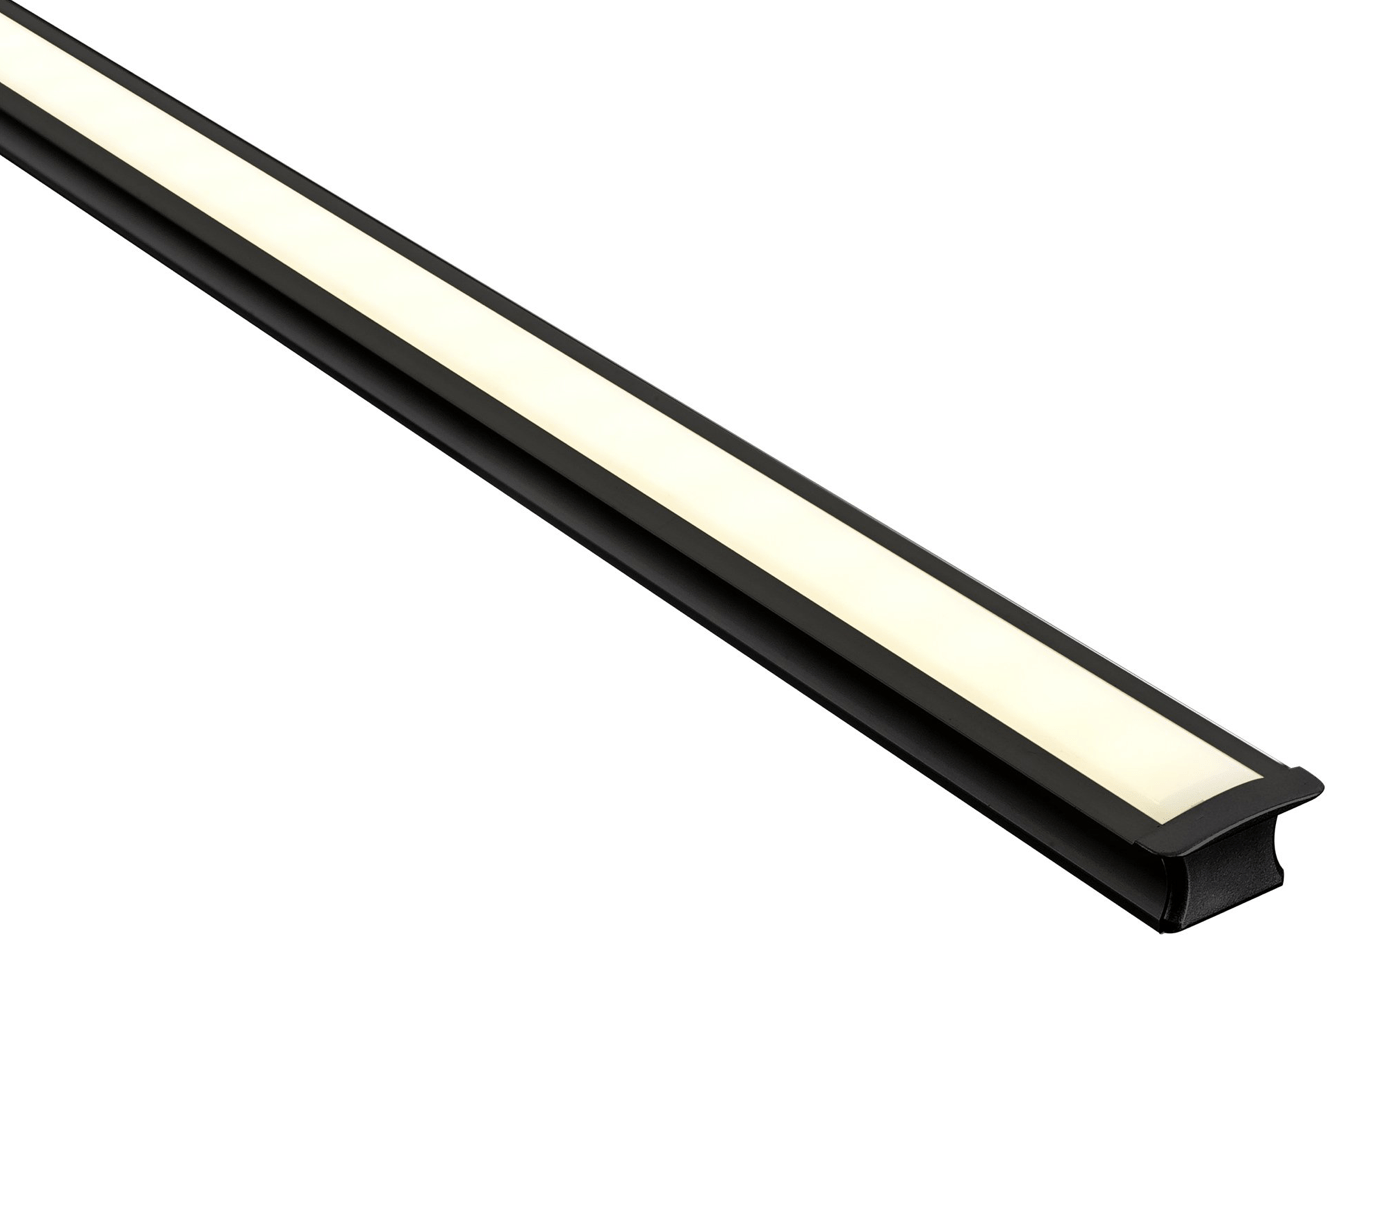 Profiles Recessed Profile - Deep Square Winged - HV9695-2515